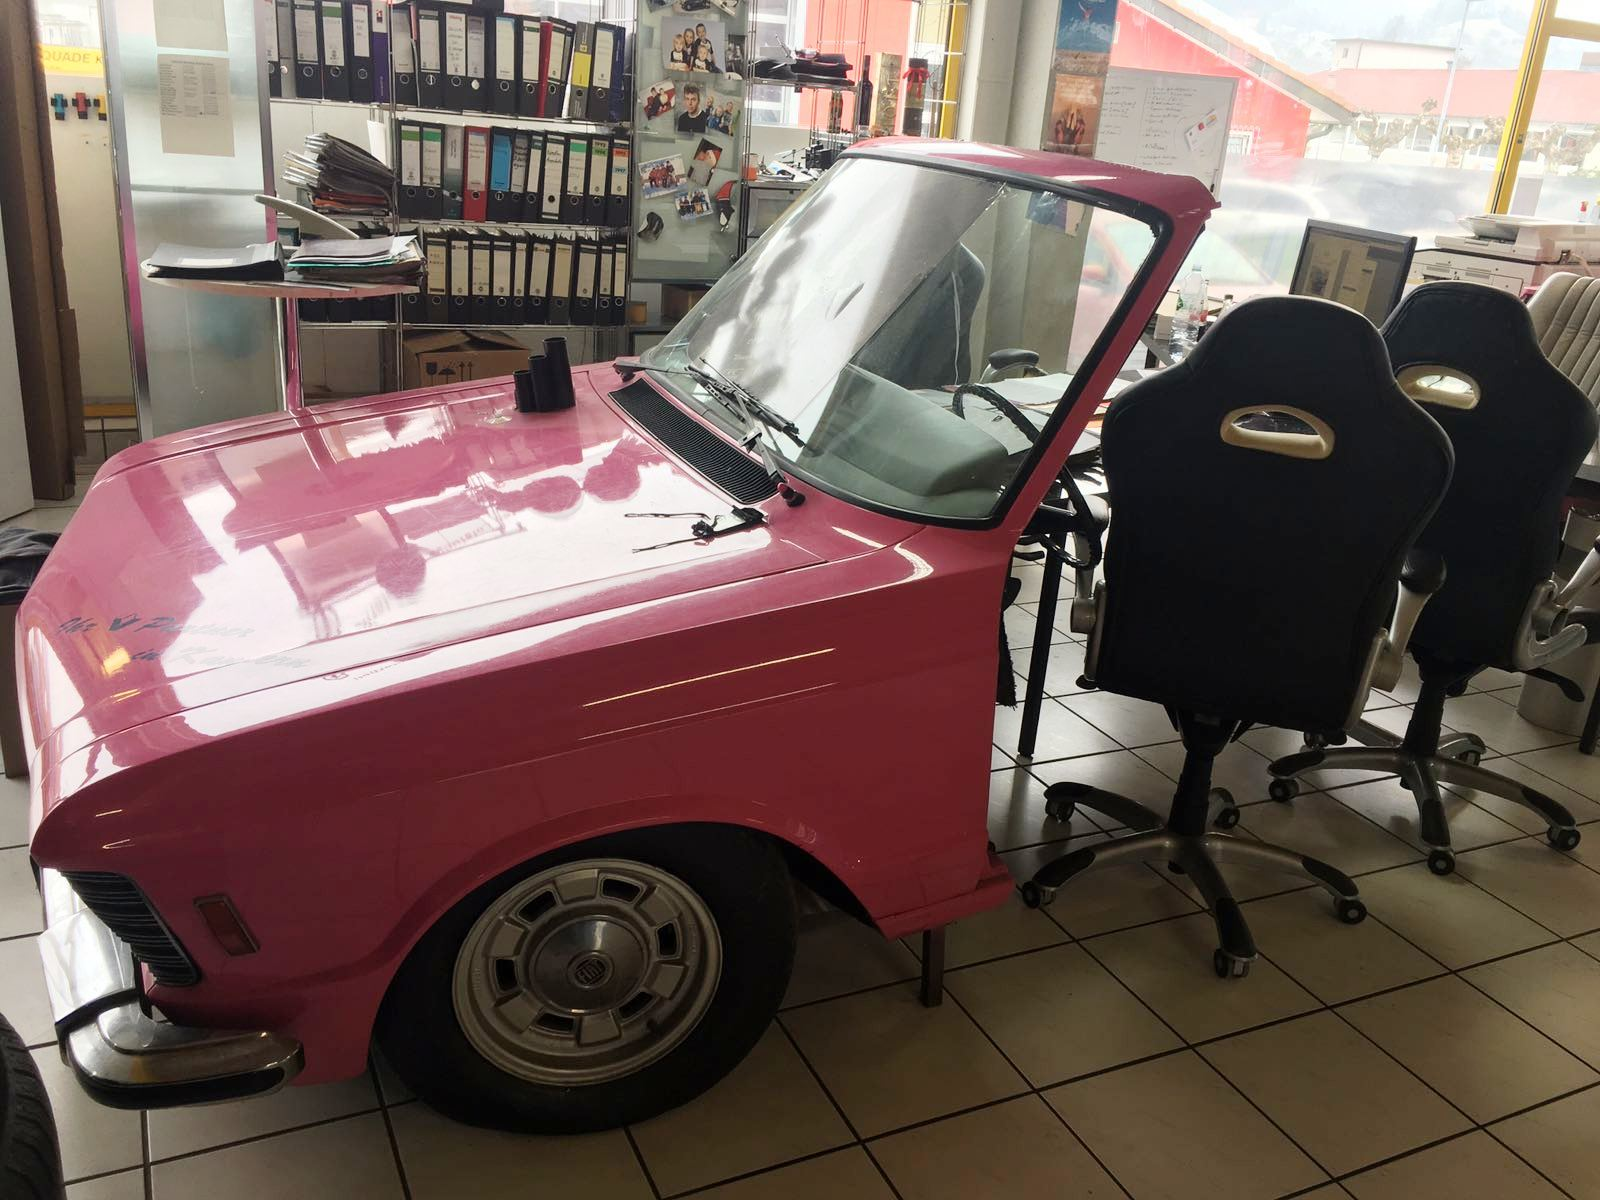 Fiat 130 couch